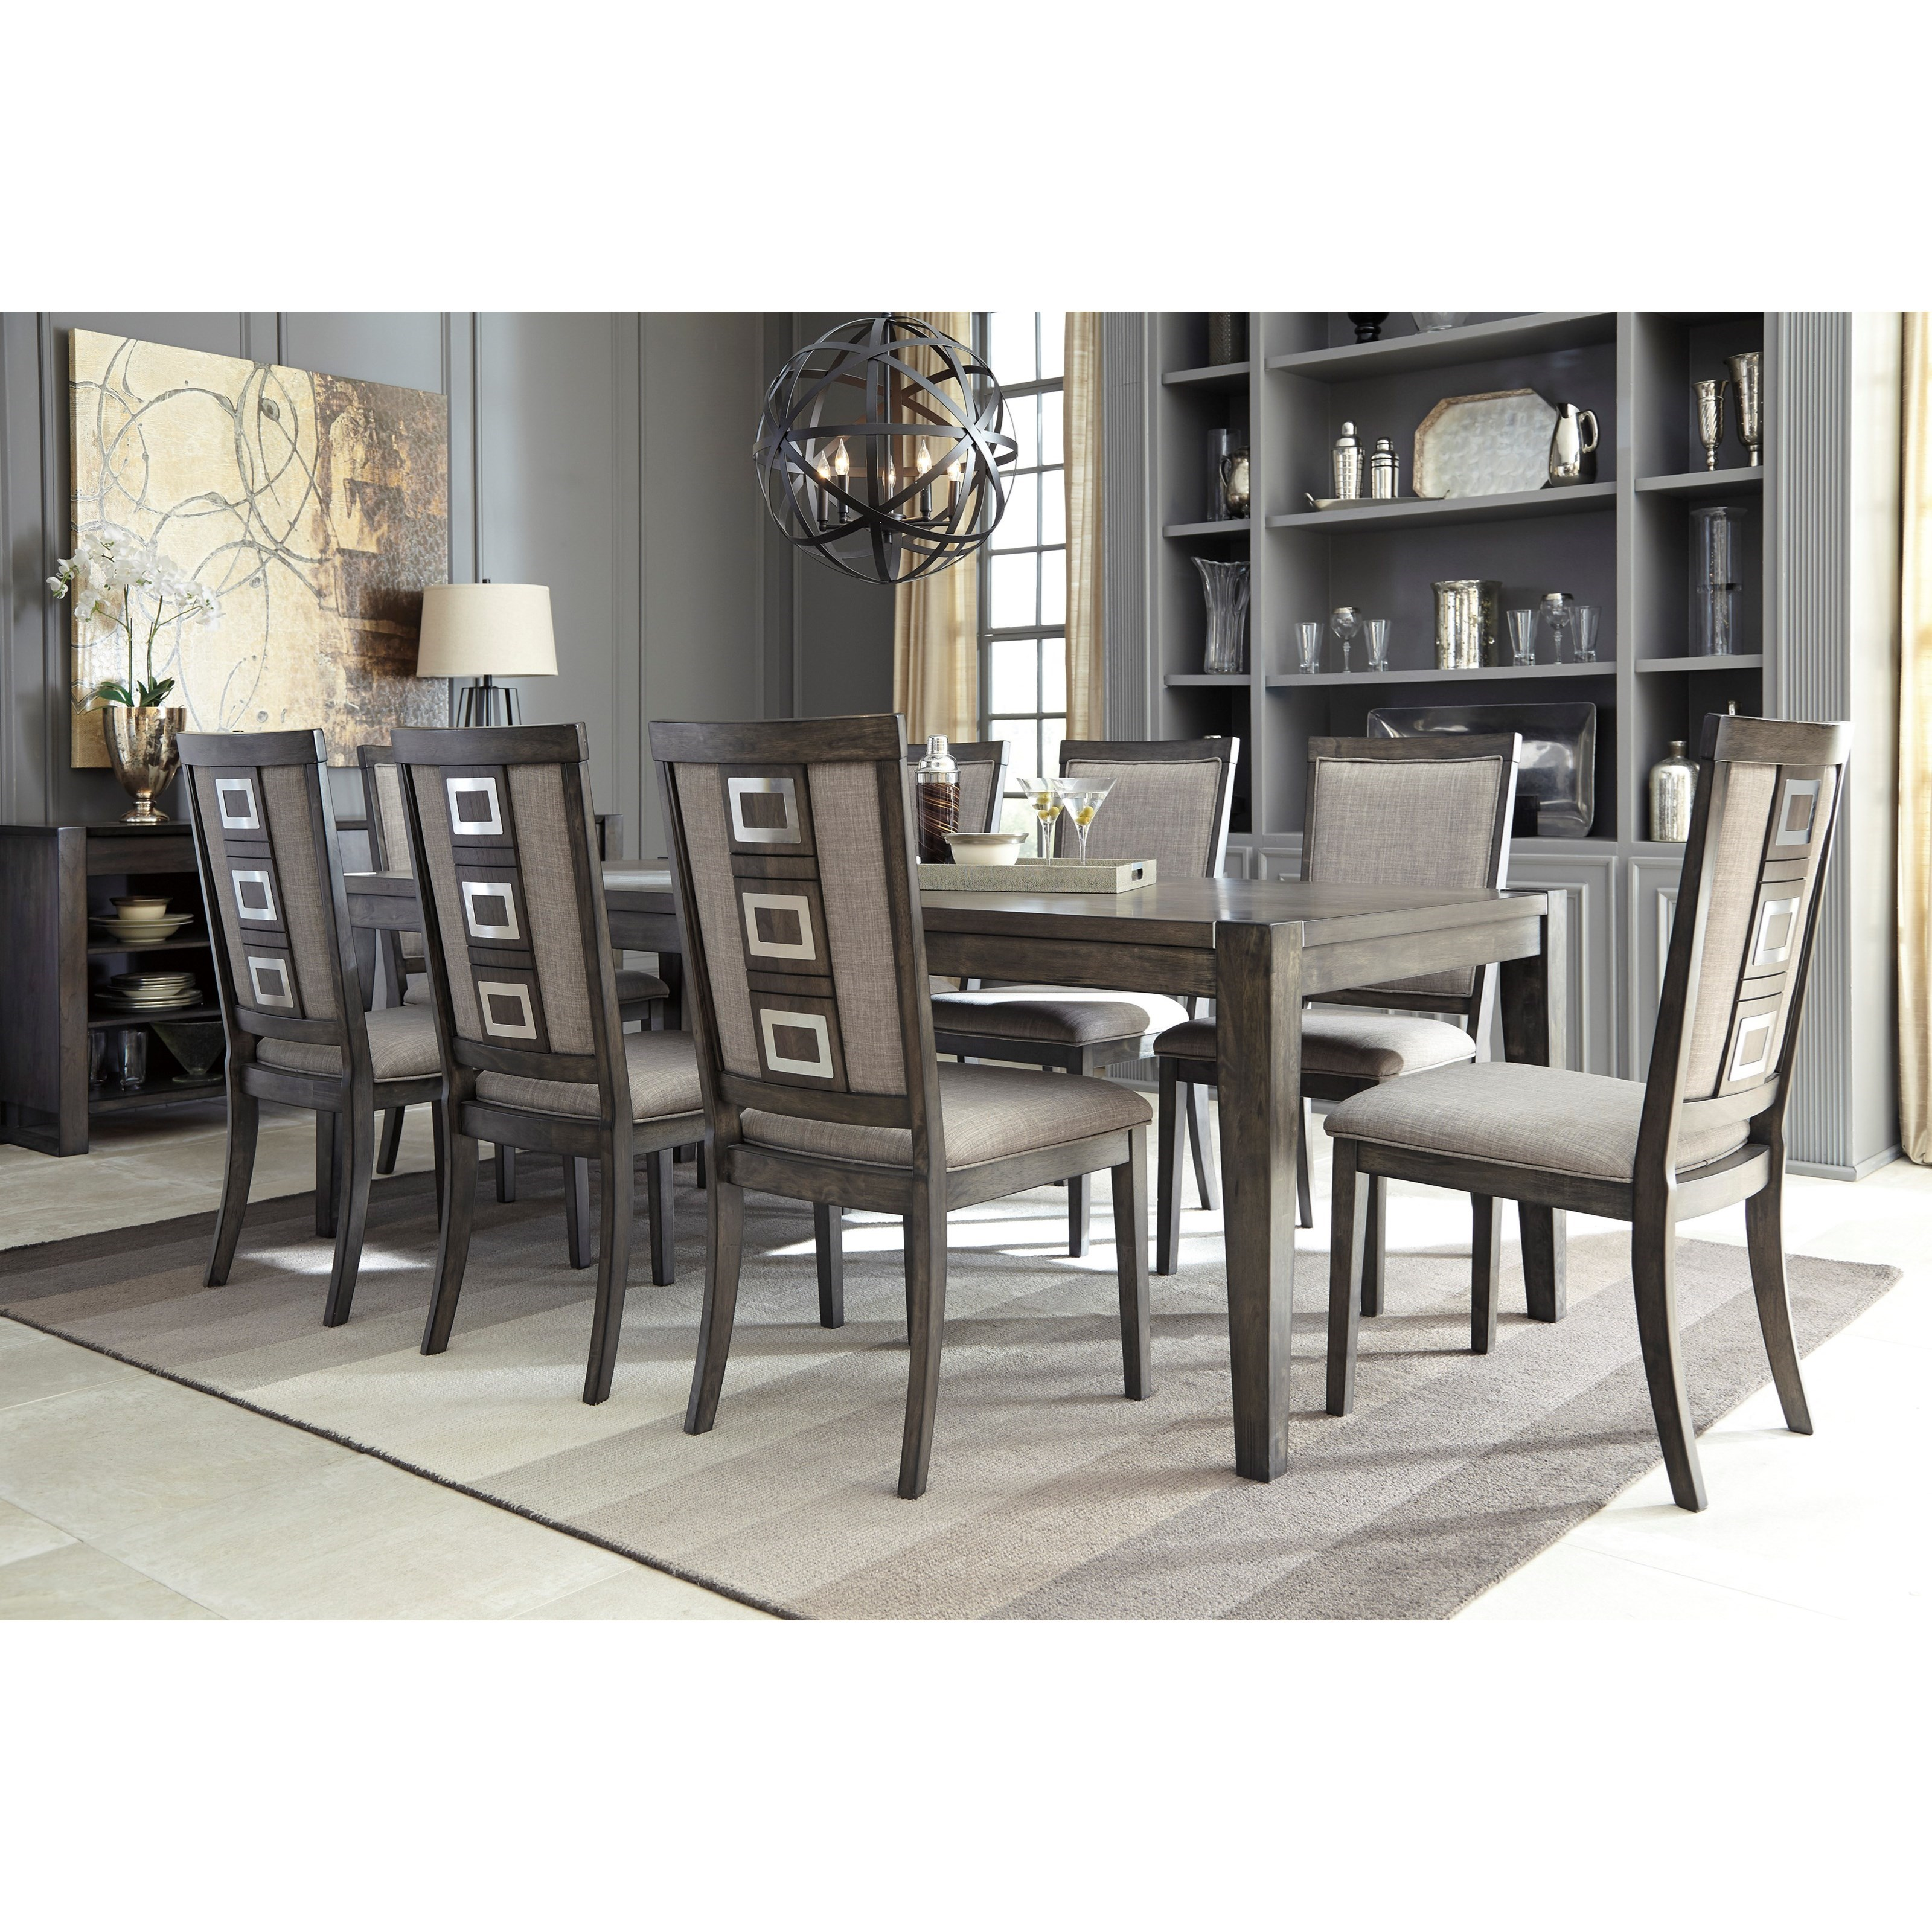 Chadoni Formal Dining Room Group by Signature Design by Ashley at Northeast Factory Direct